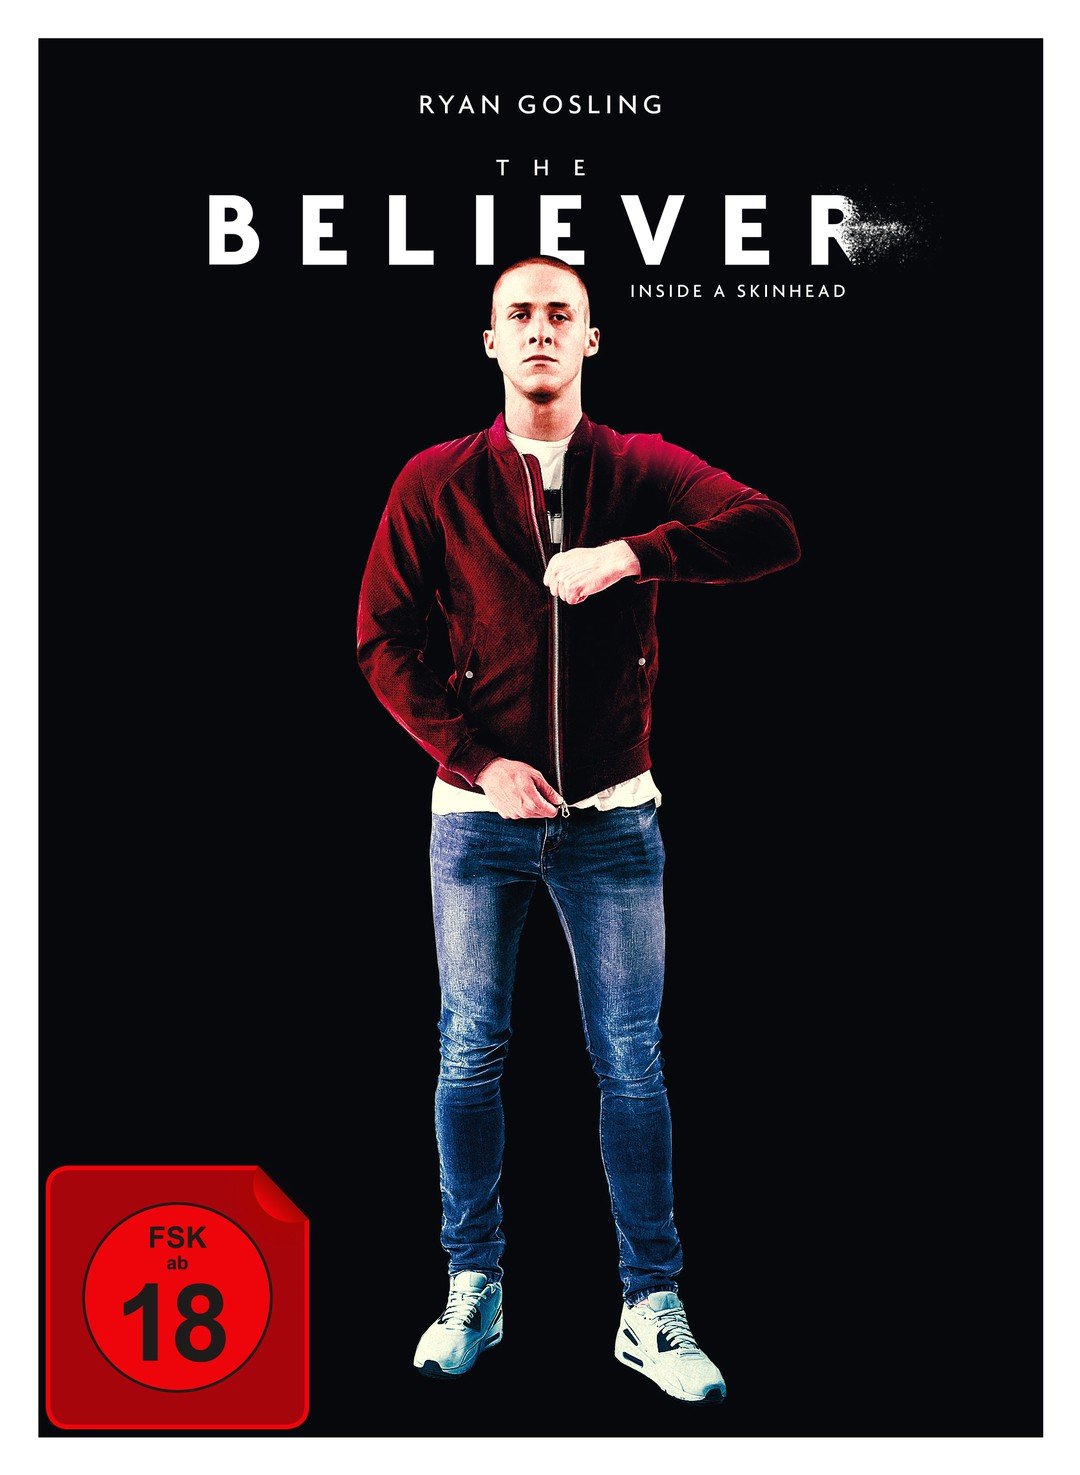 Inside A Skinhead - The Believer Trailer - Bild 1 von 10